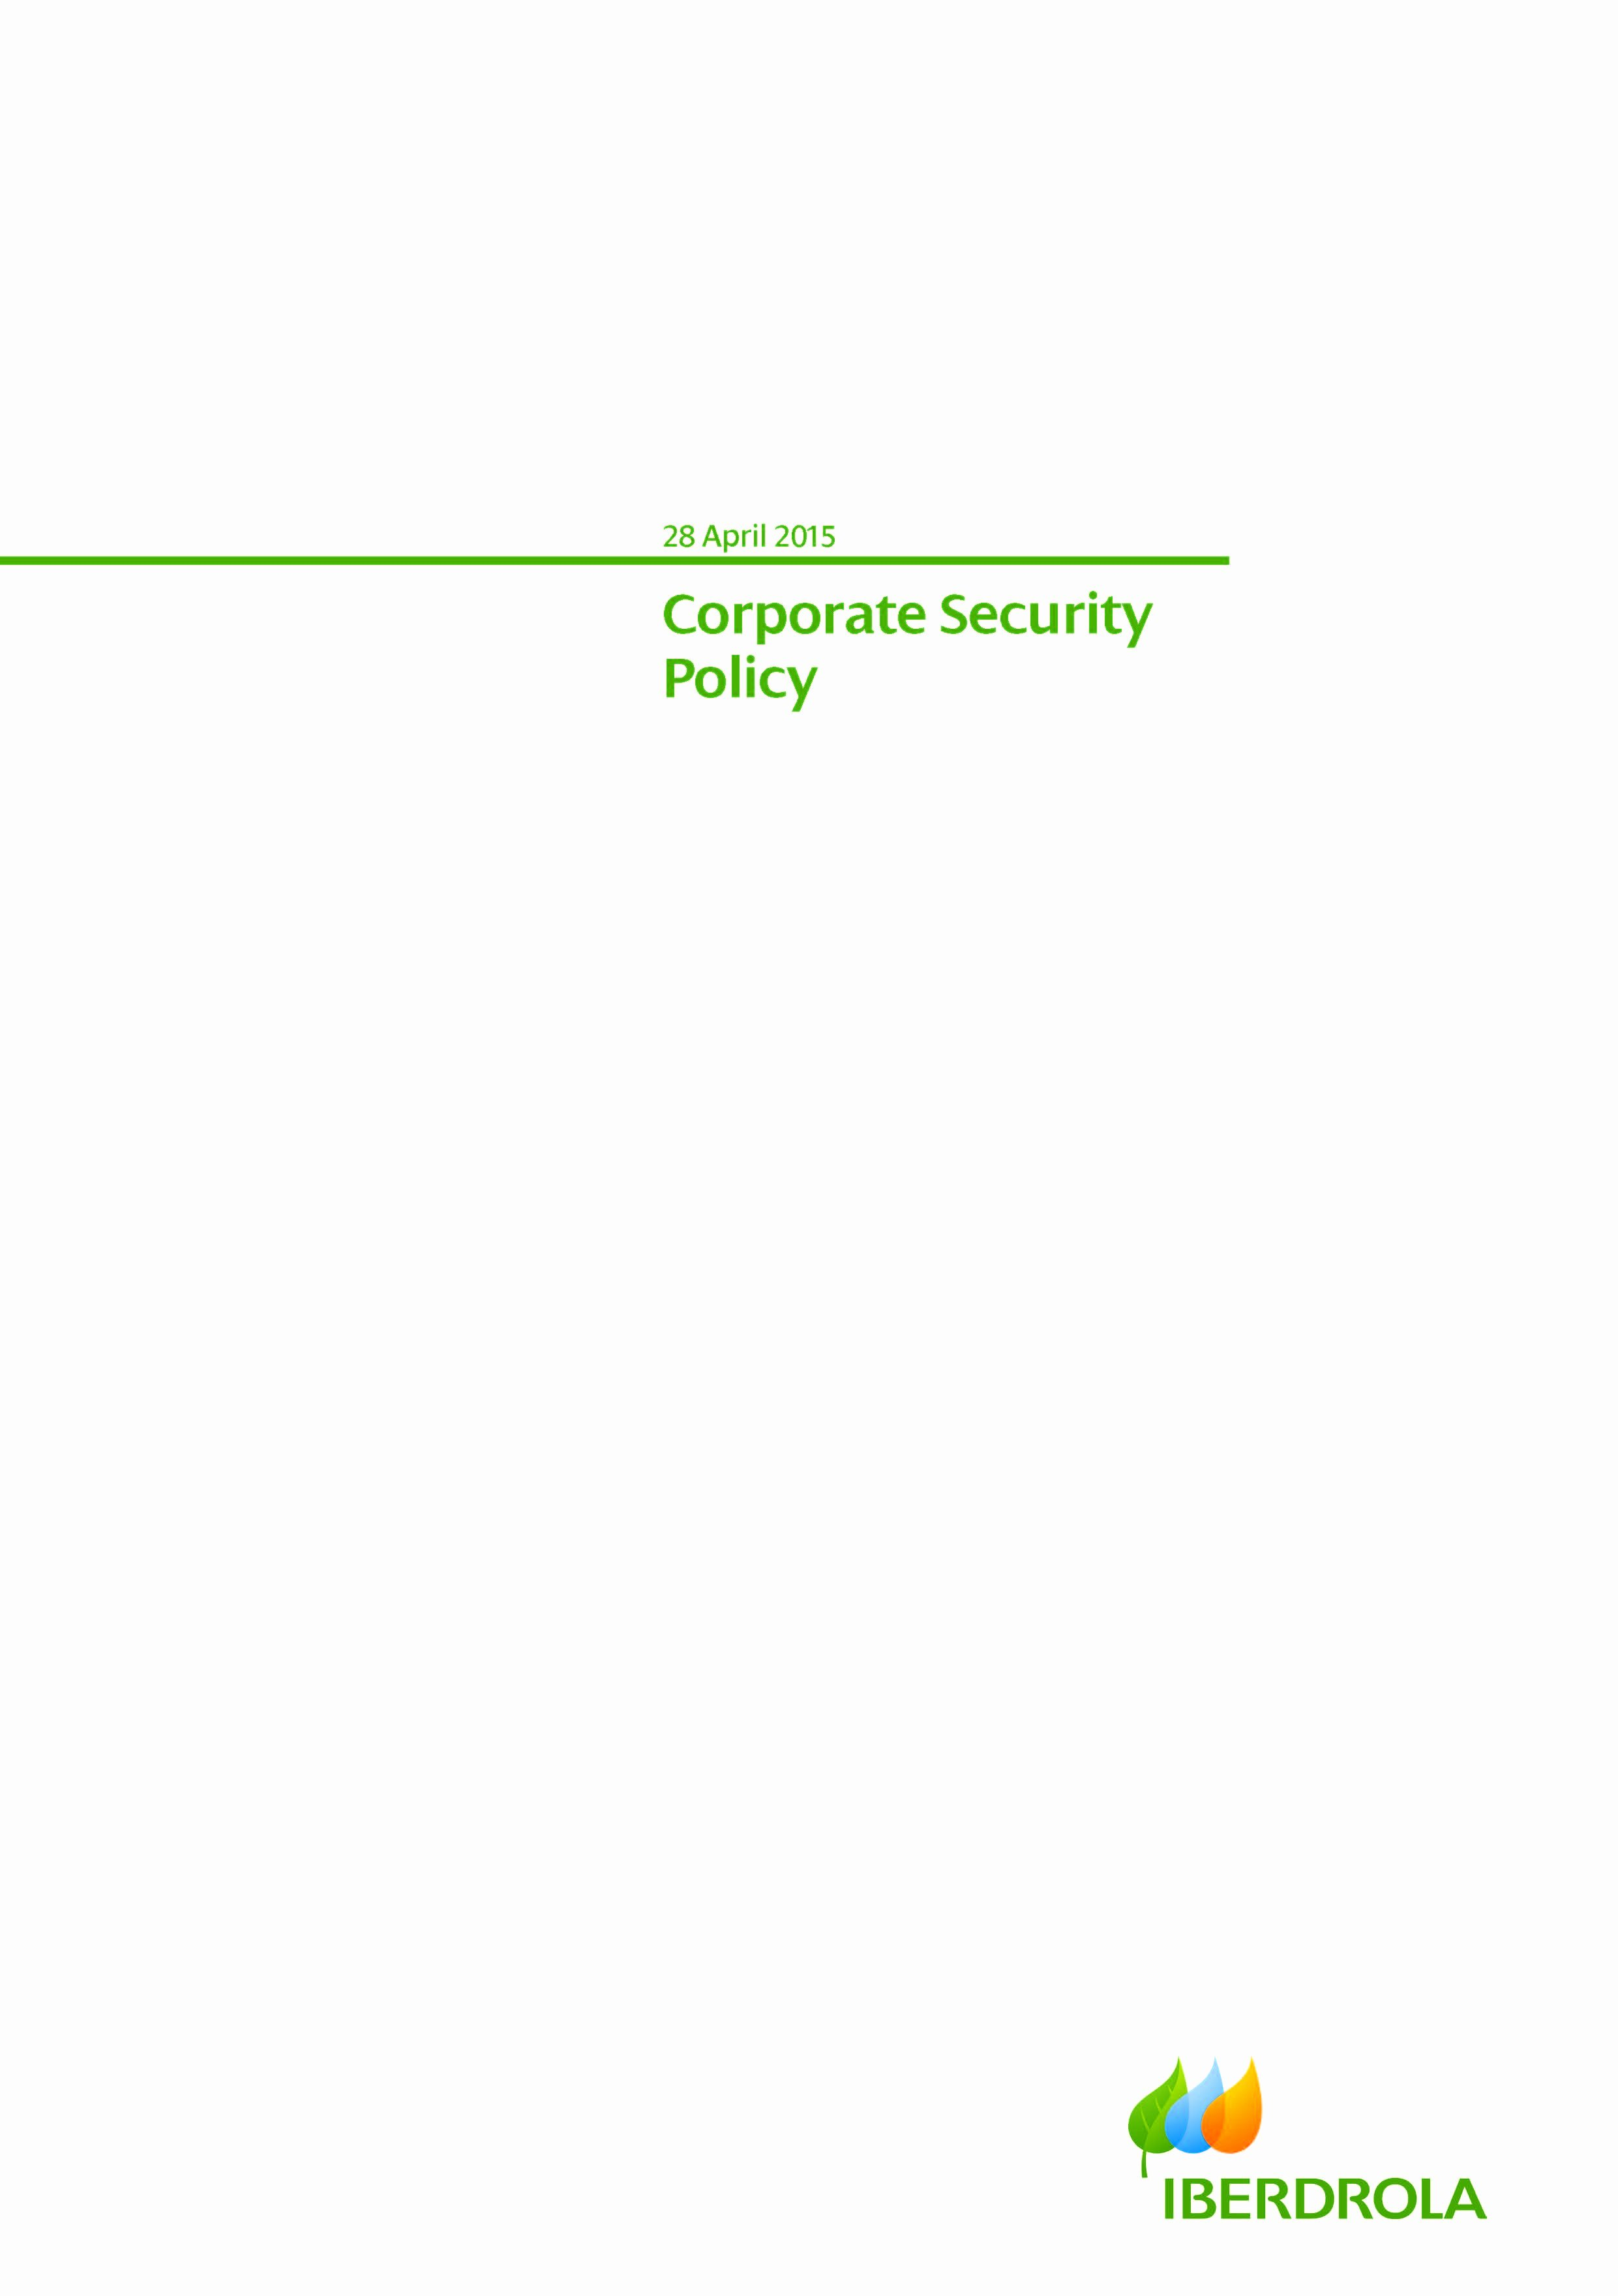 Corporate Security Policy Template Awesome Corporate Security Policy Template Pdf format